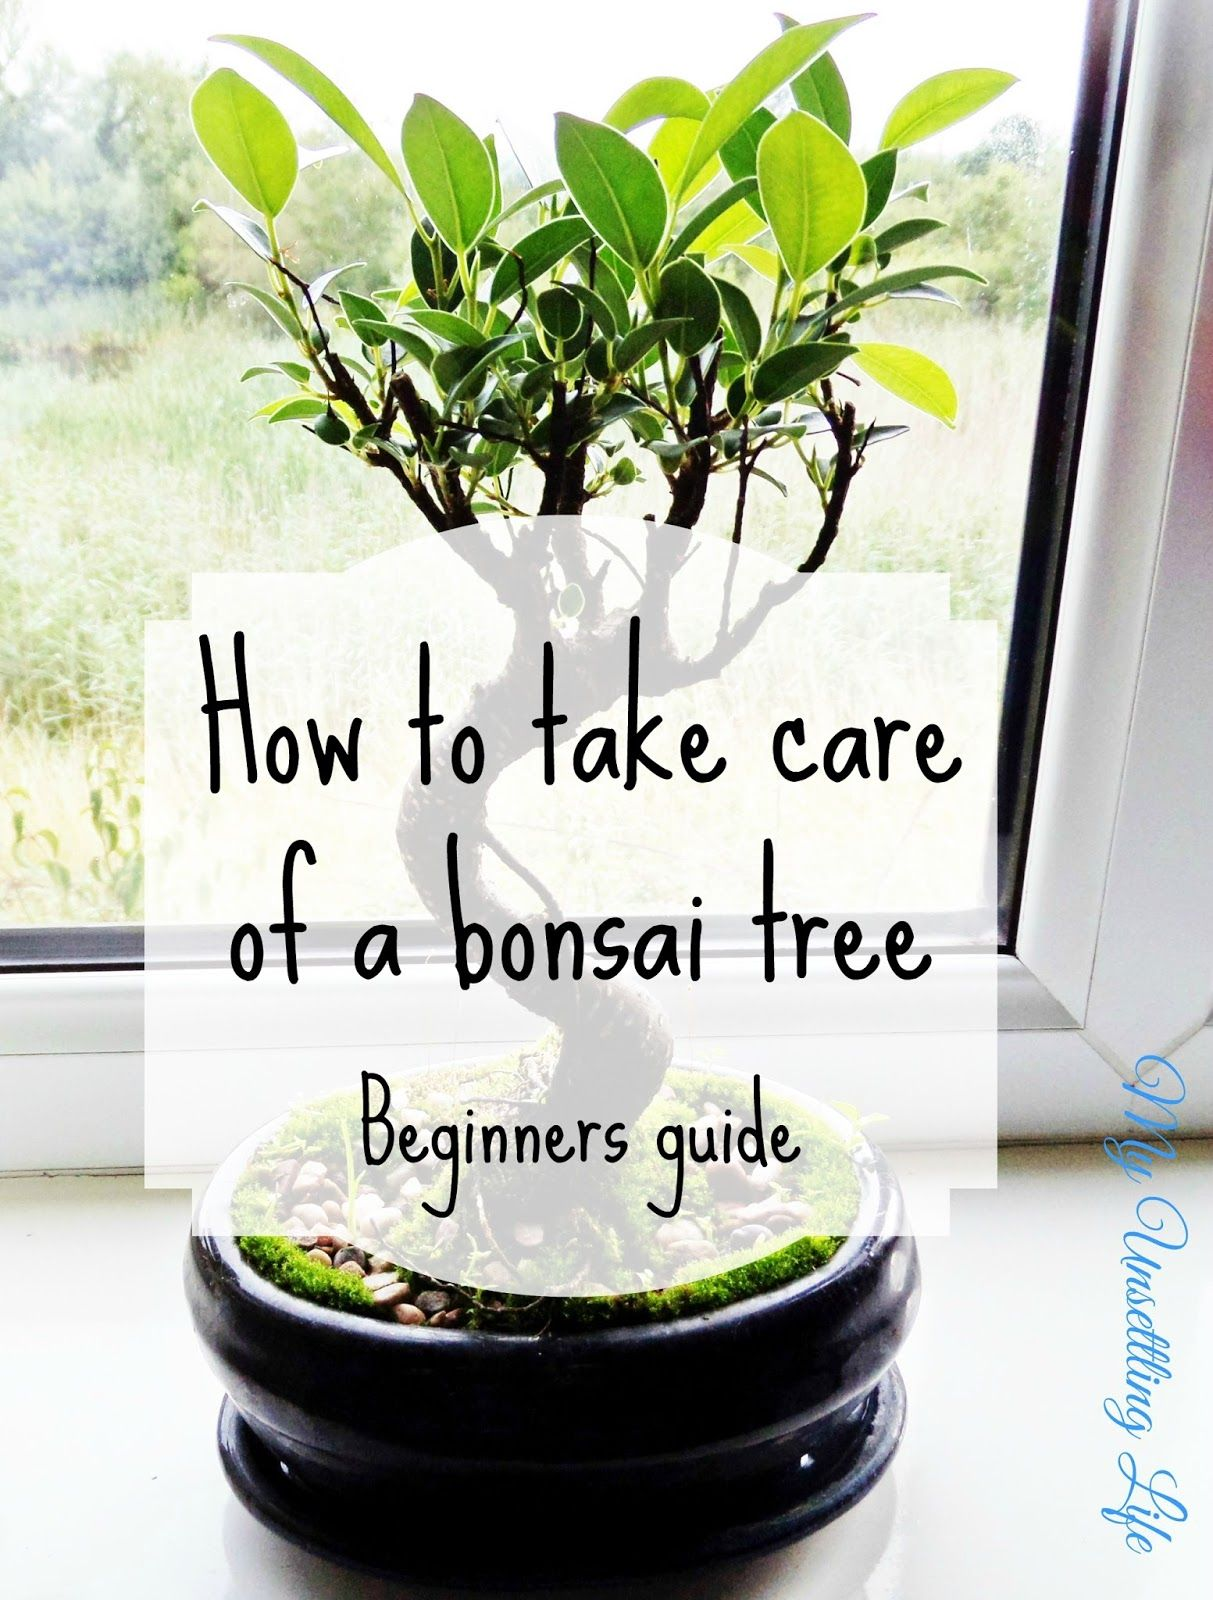 How to take care of a bonsai tree - My Unsettling Life How To Take Care Of A Bonsai Tree Beginners Guide